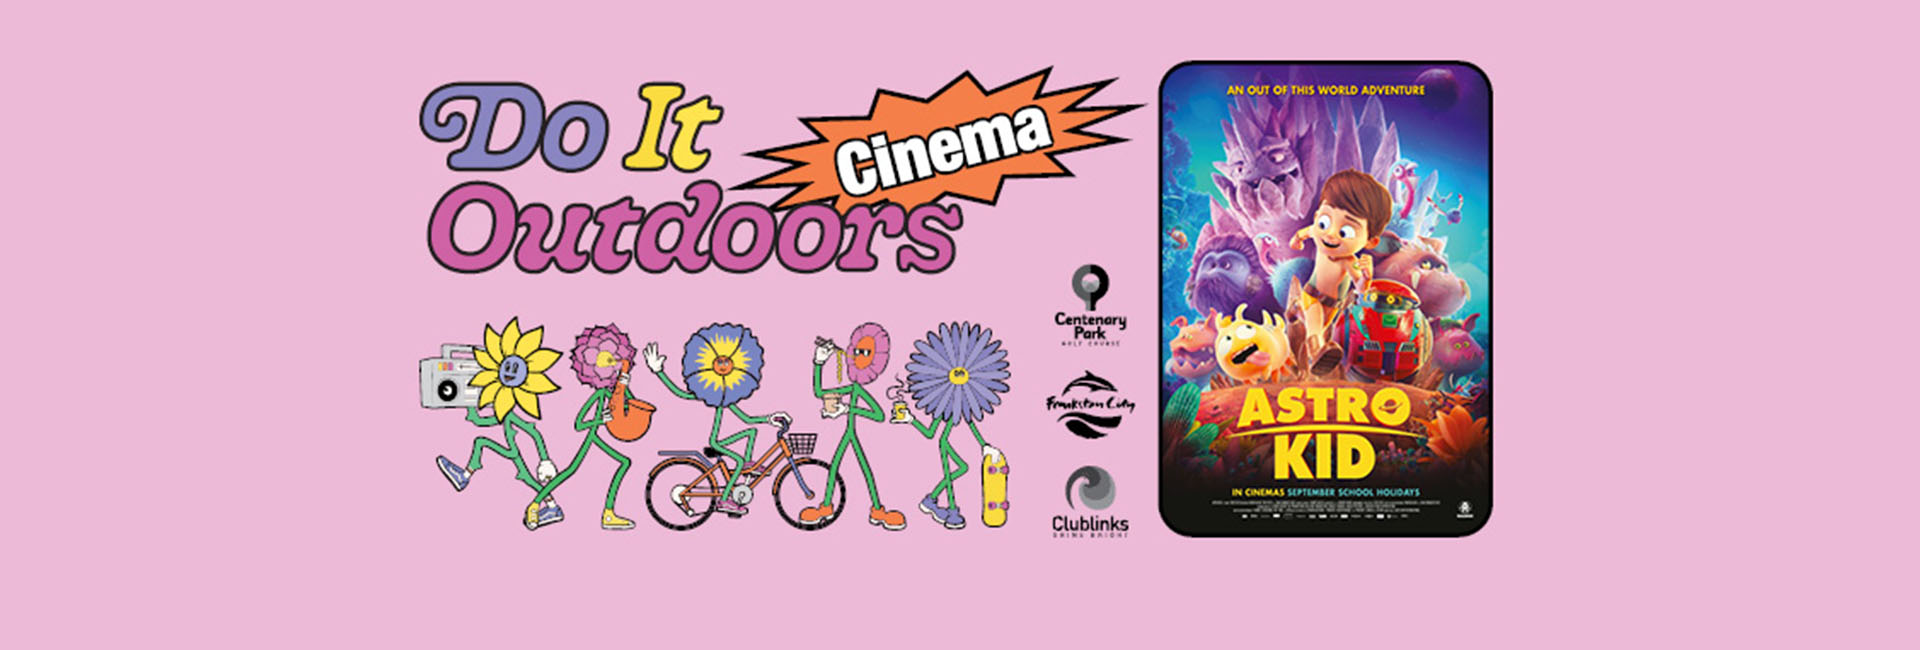 Do it Outdoors Family Fun Outdoor Cinema